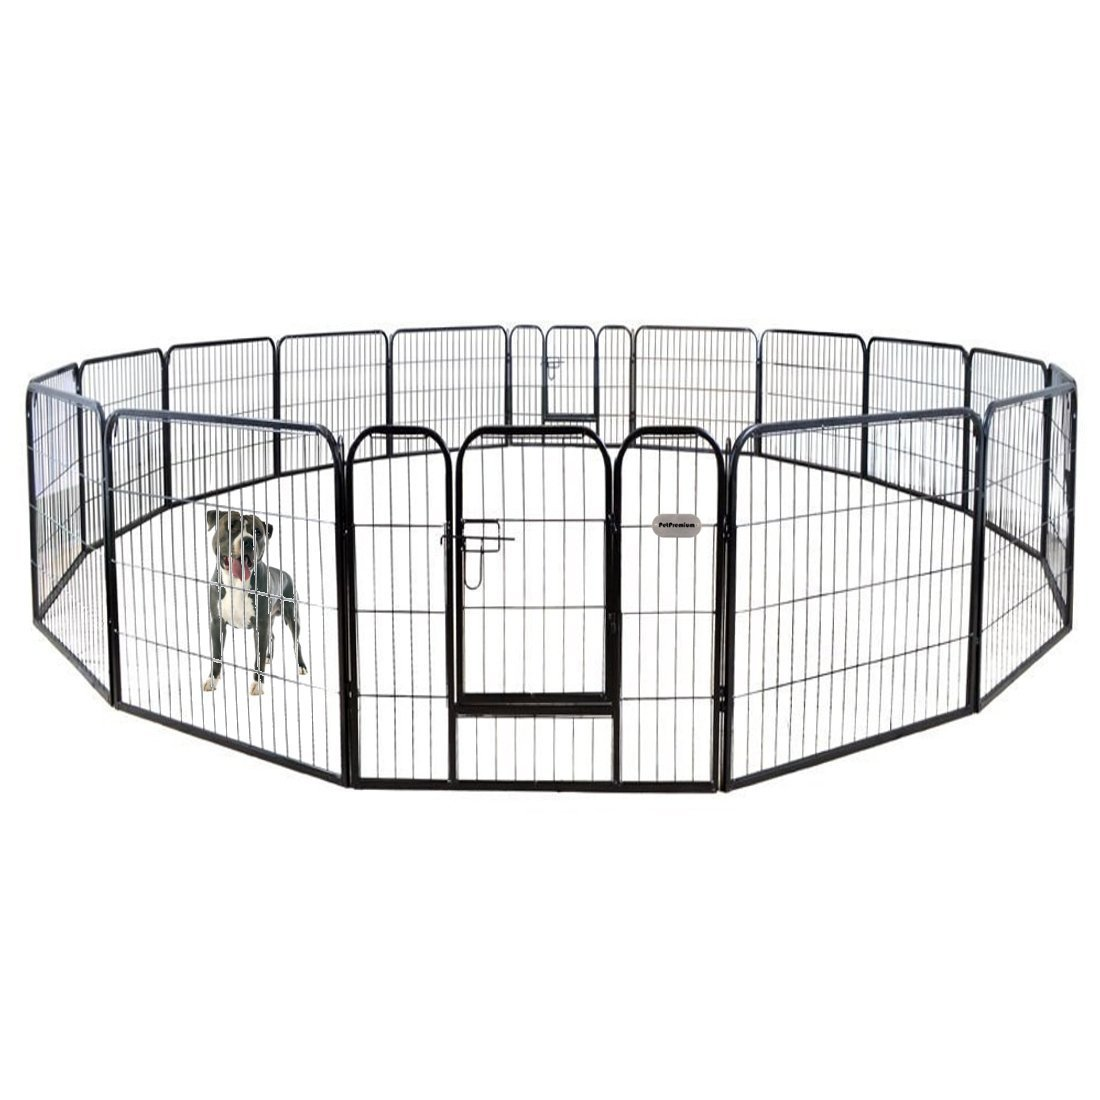 PetPremium Dog Pen Metal Fence Gate Portable Outdoor RV Play Yard | Heavy Duty Outside Pet Large Playpen Exercise | Indoor Puppy Kennel Cage Crate Enclosures | 32'' Height 16 Panel